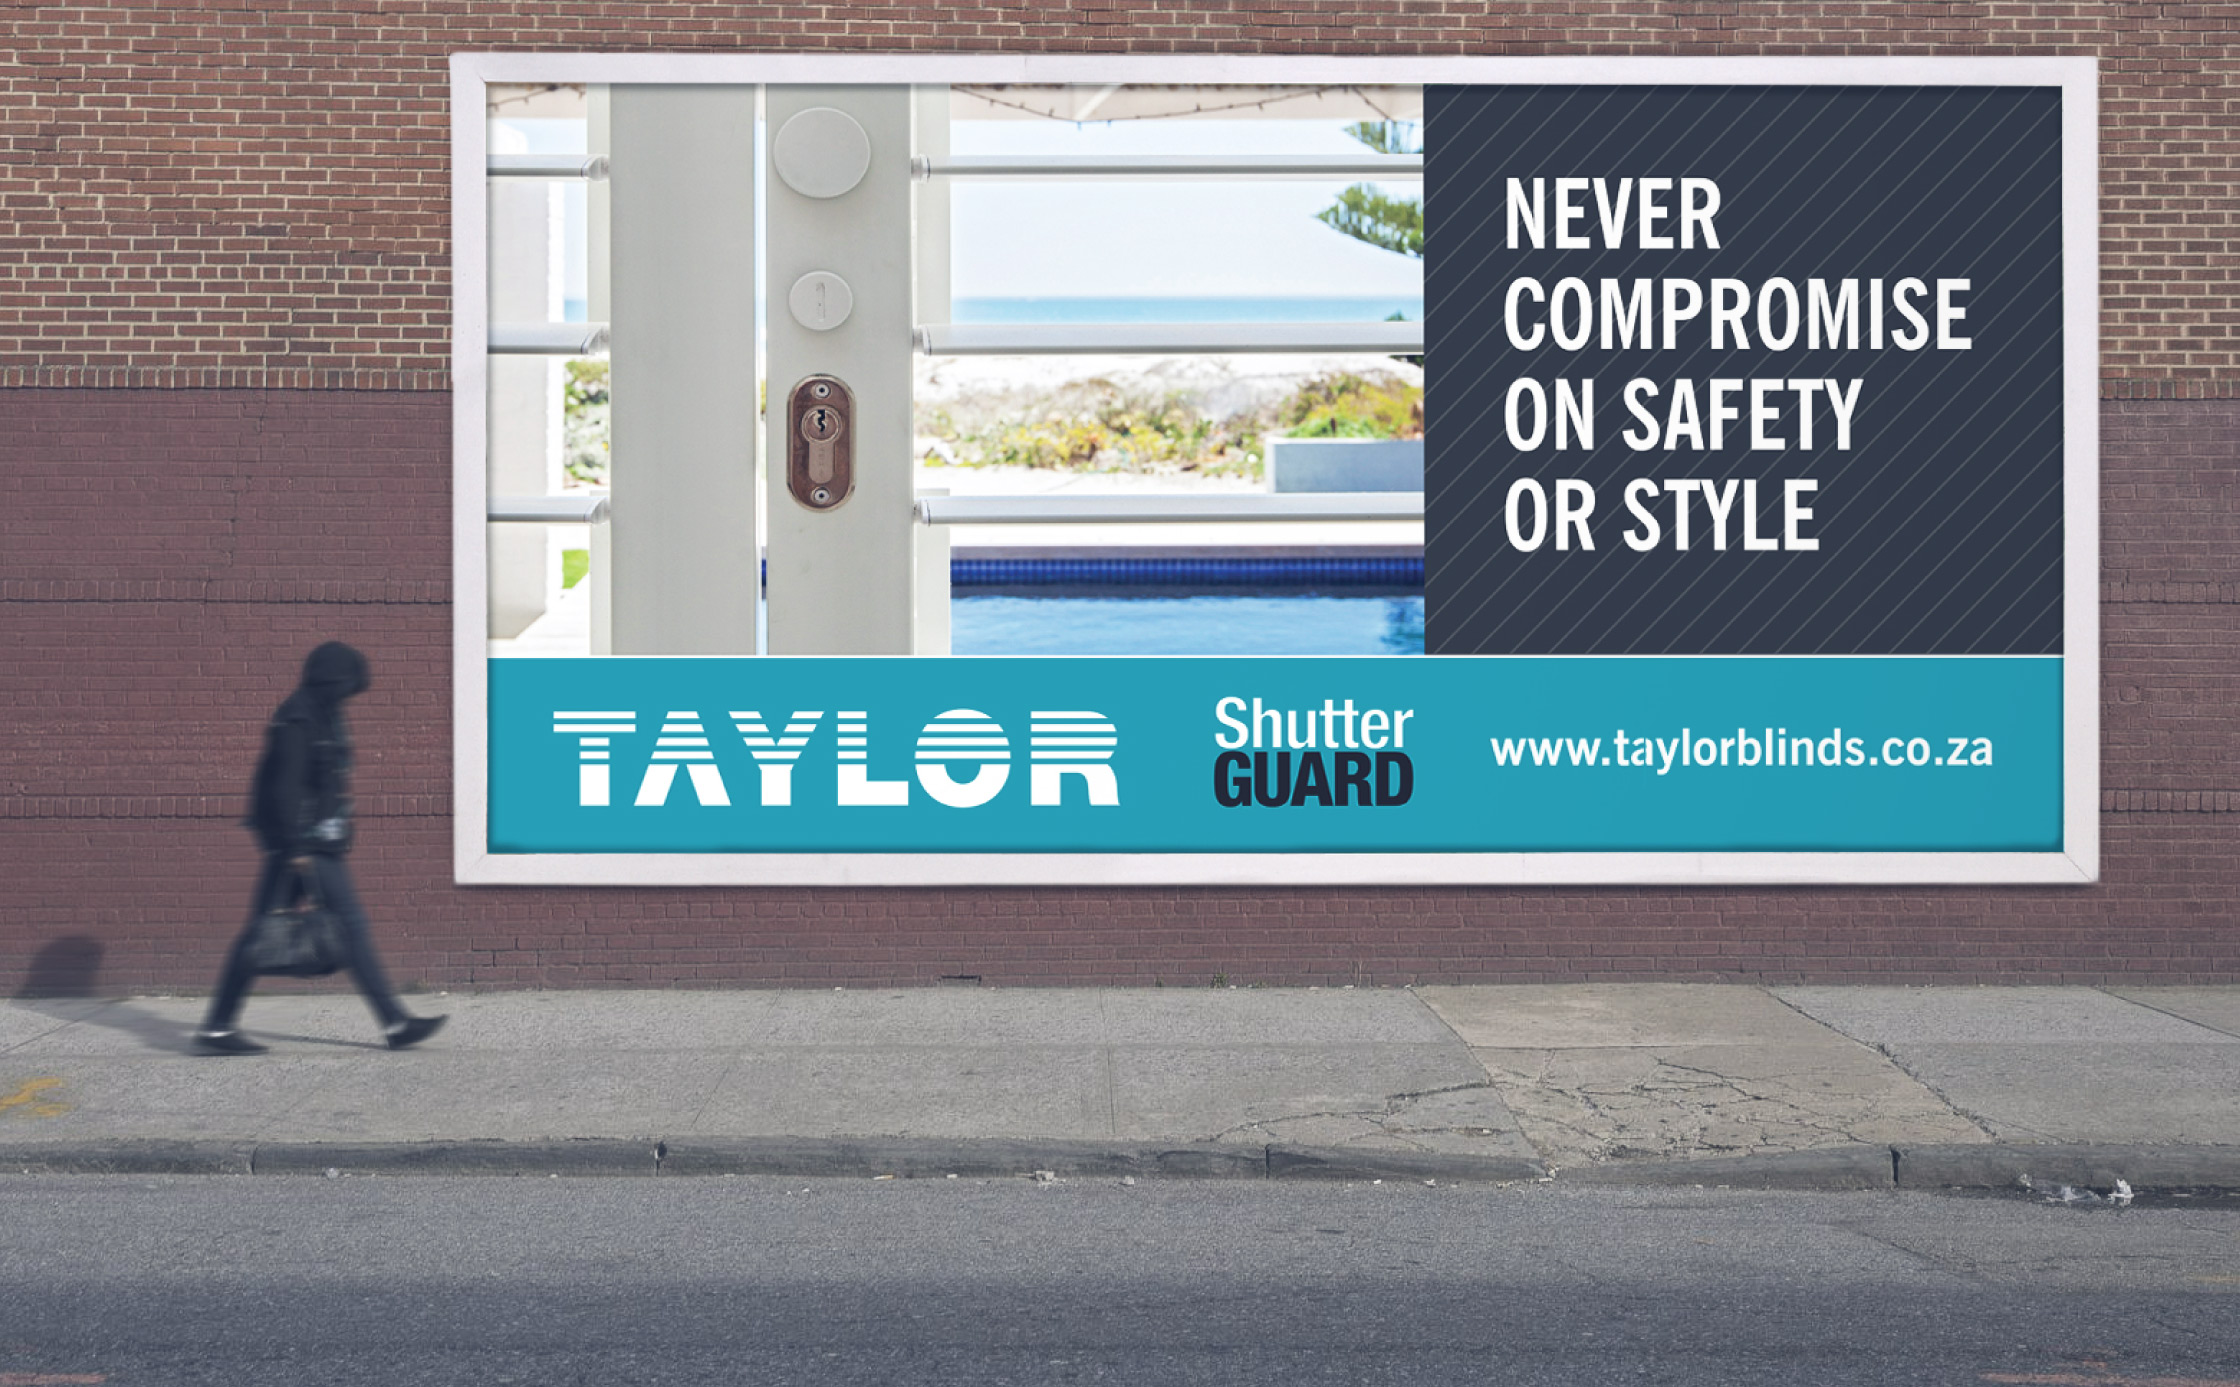 Taylor Blinds Billboard design - Brand identity agency Cape Town